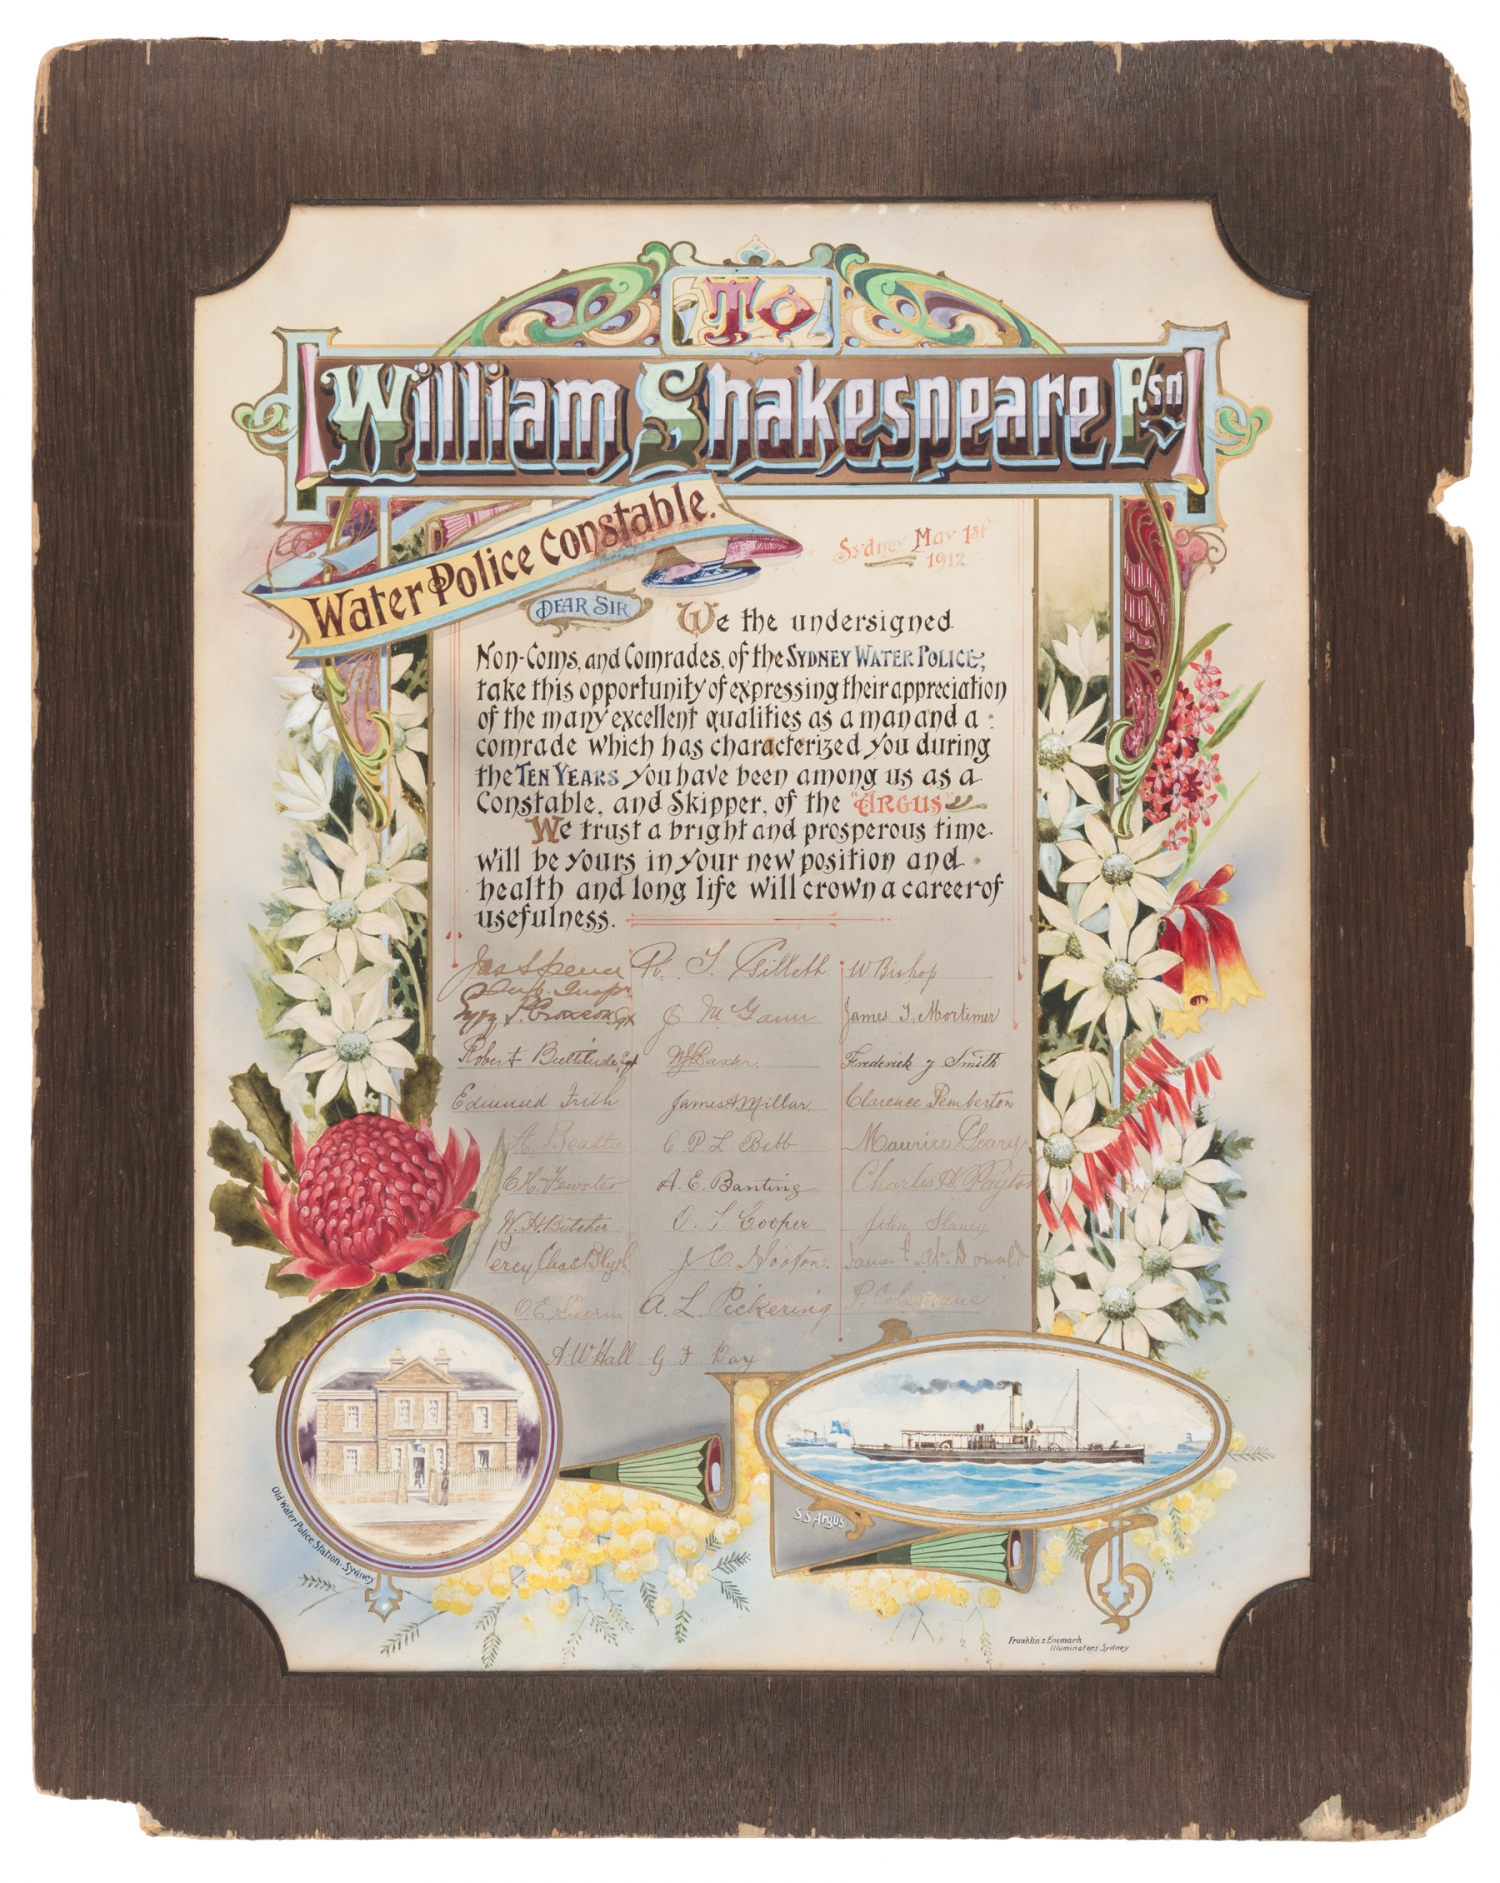 Colourfully ornate certificate with William Shakespeare's name at top.